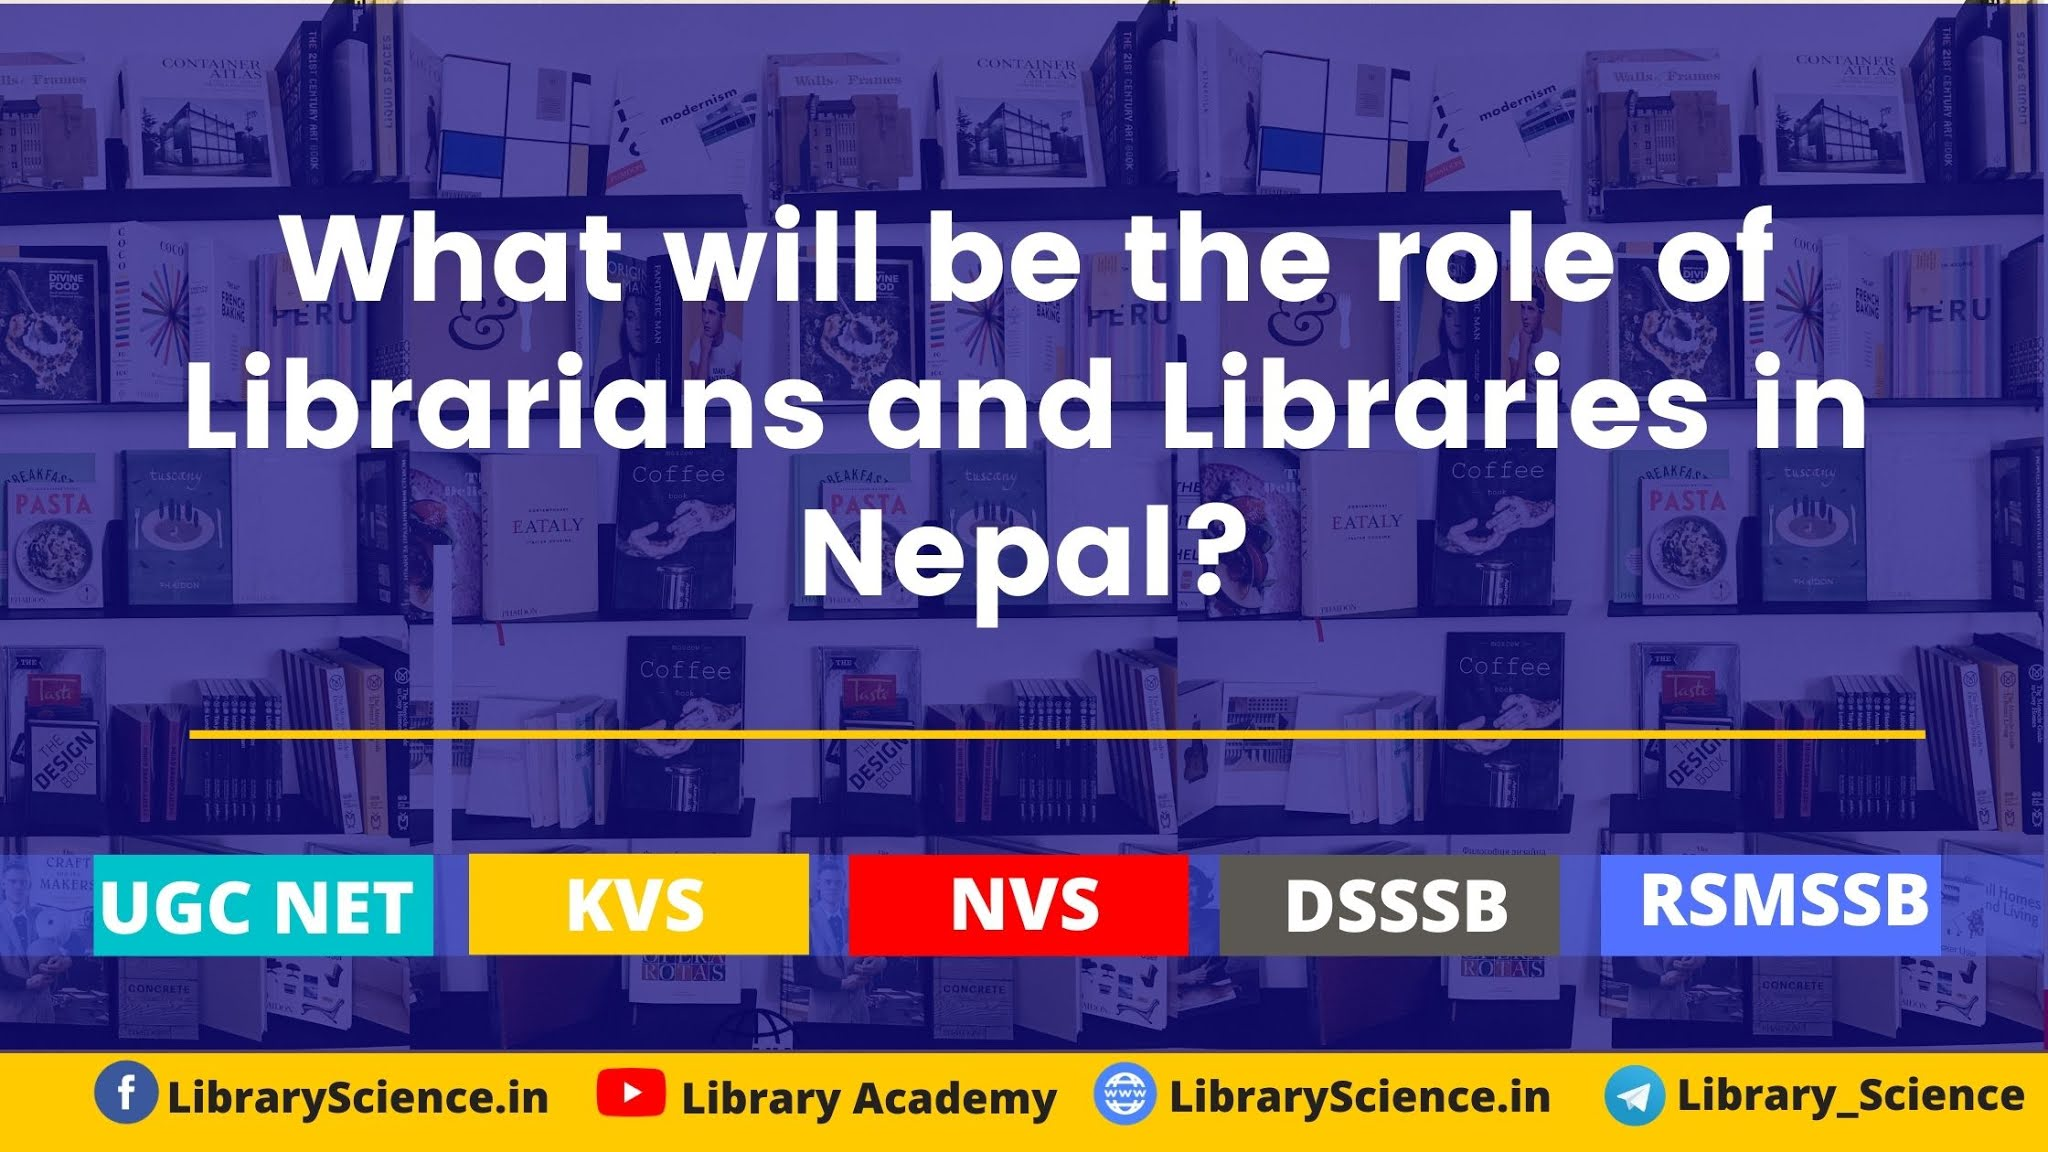 What will be the role of Librarians and Libraries in Nepal